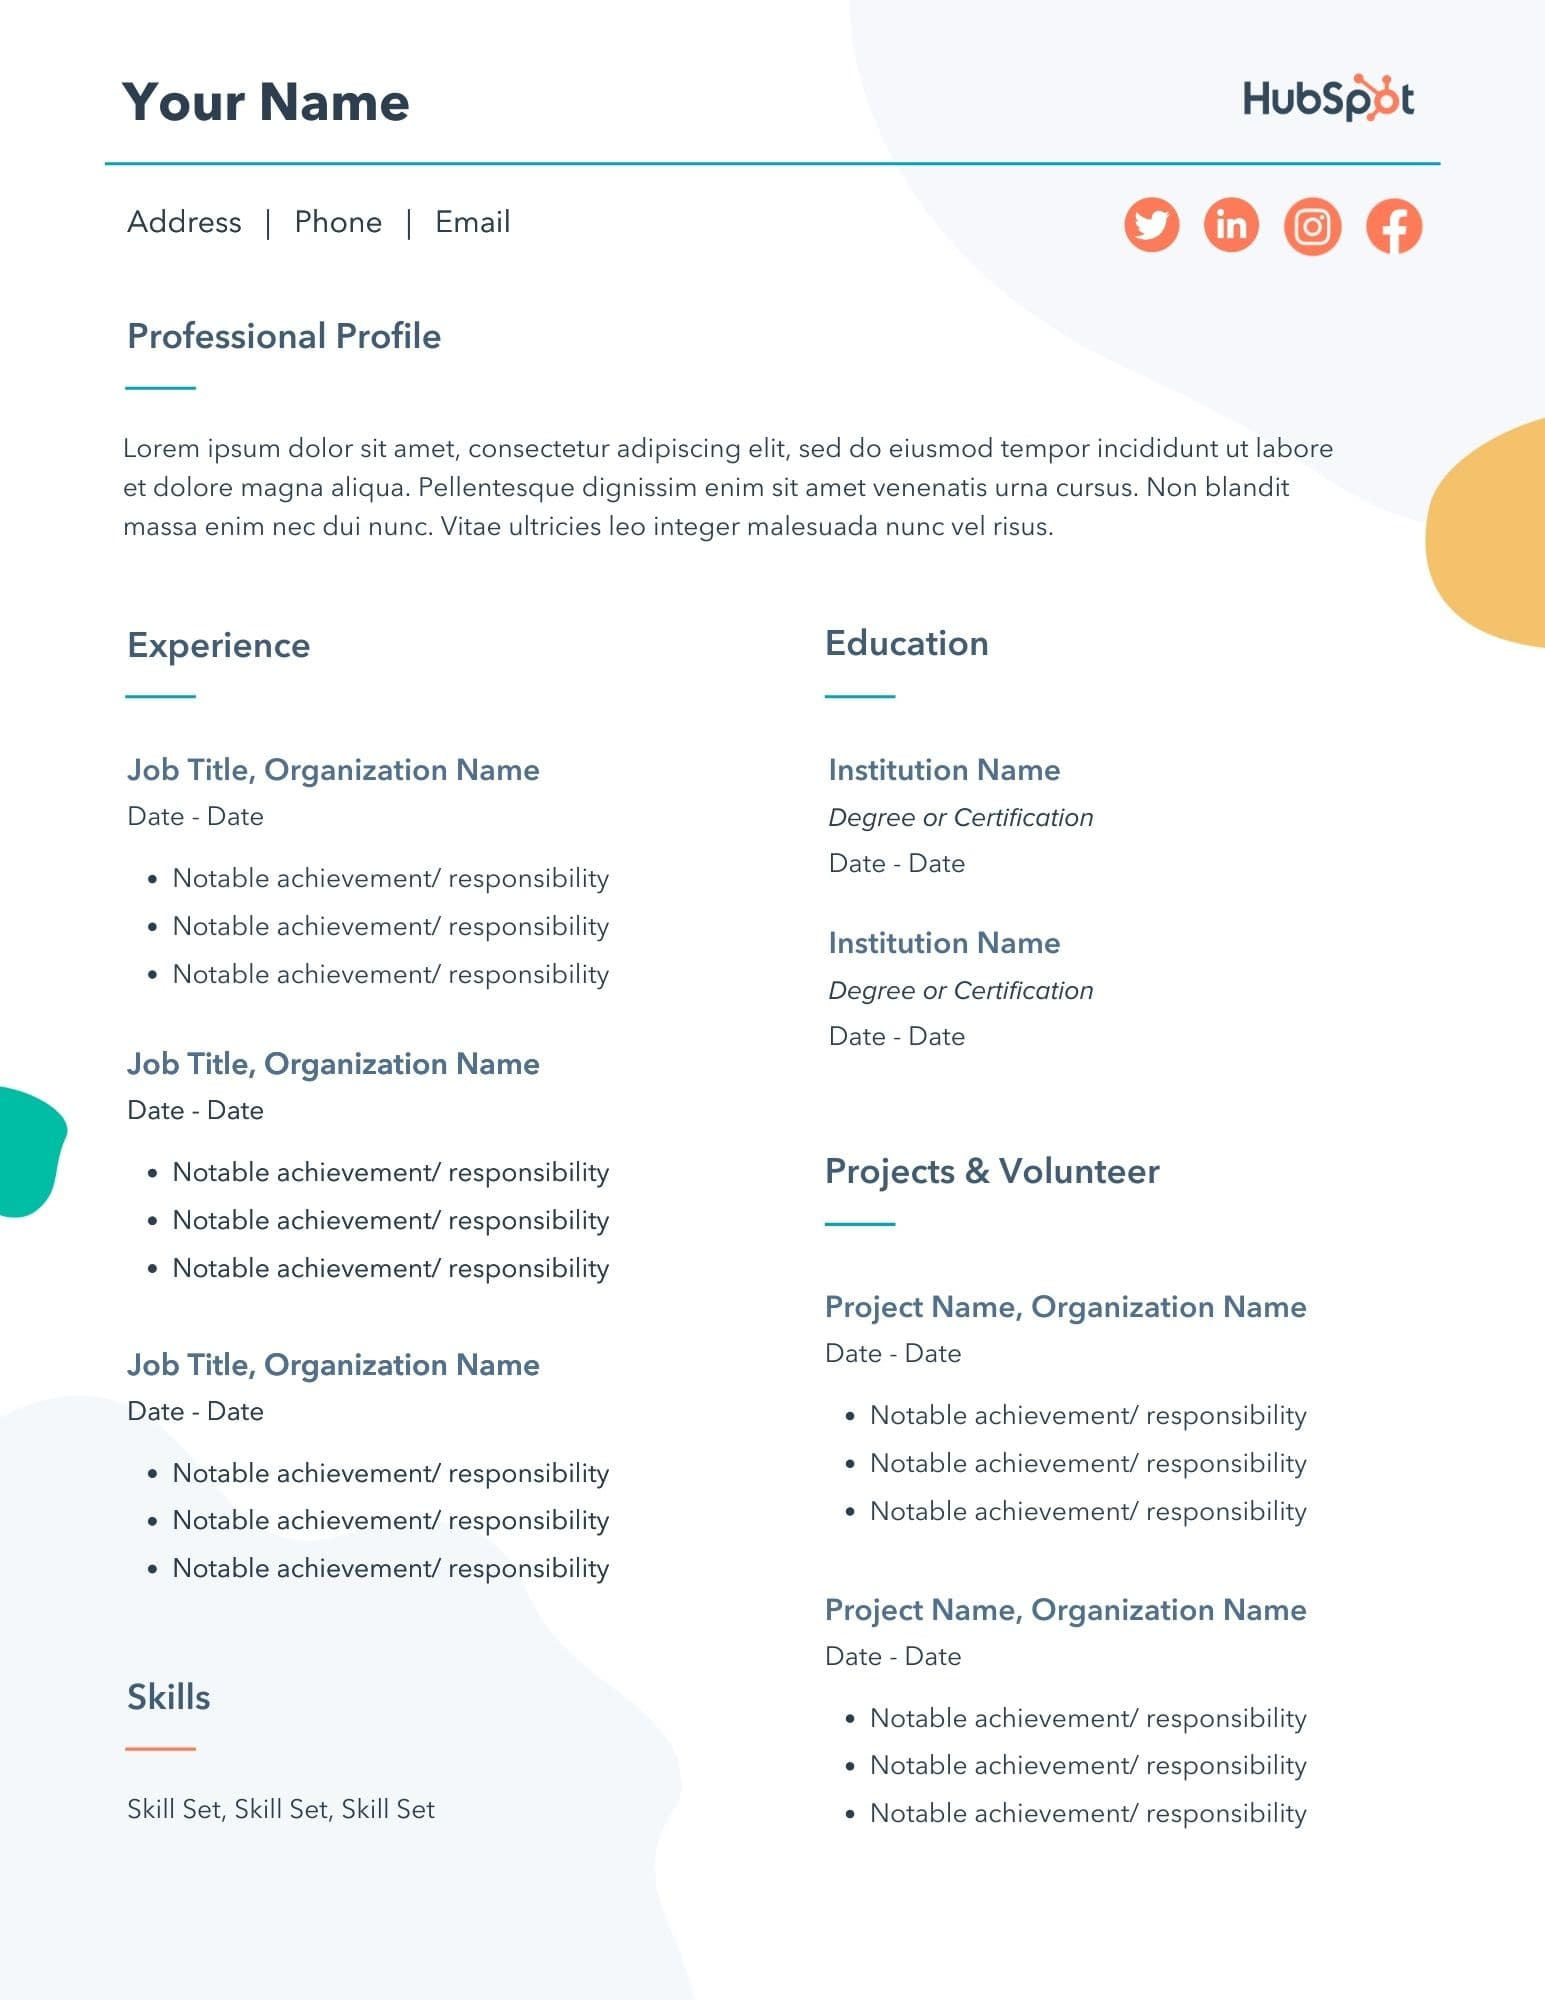 free resume templates for microsoft word to make your own best format experienced Resume Best Resume Format For Experienced Free Download